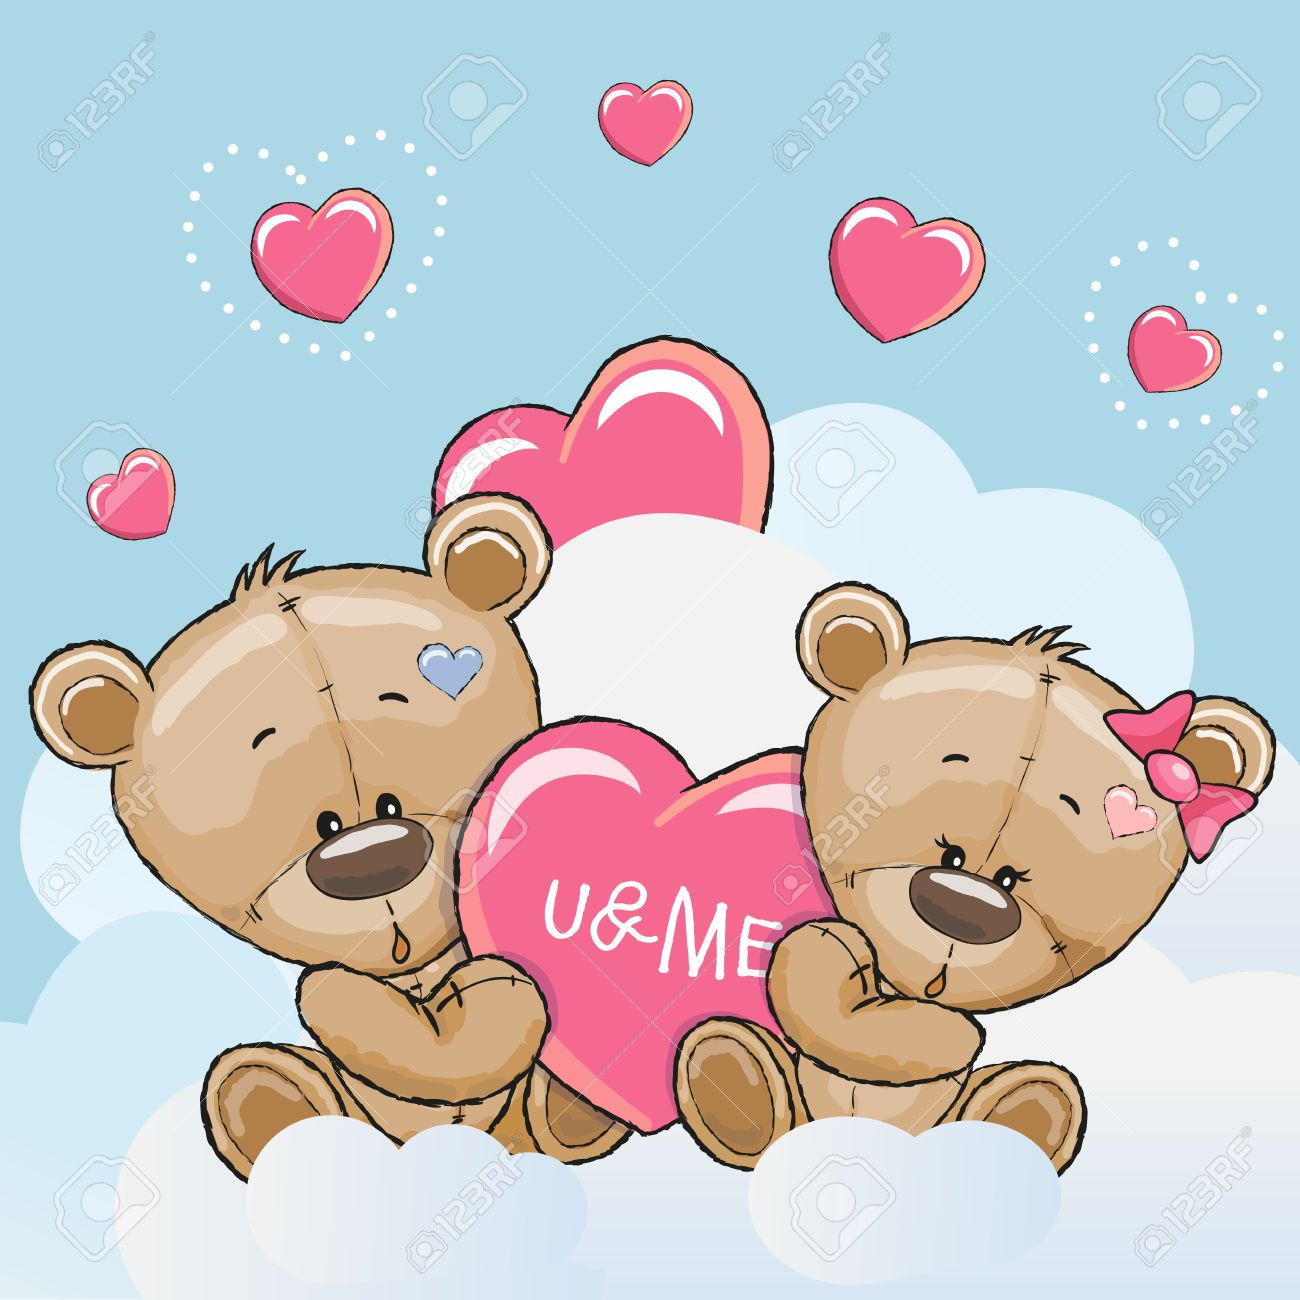 Valentine Card With Cute Cartoon Lovers Bears Royalty Free Cliparts Vectors And Stock Illustration Image 52009590